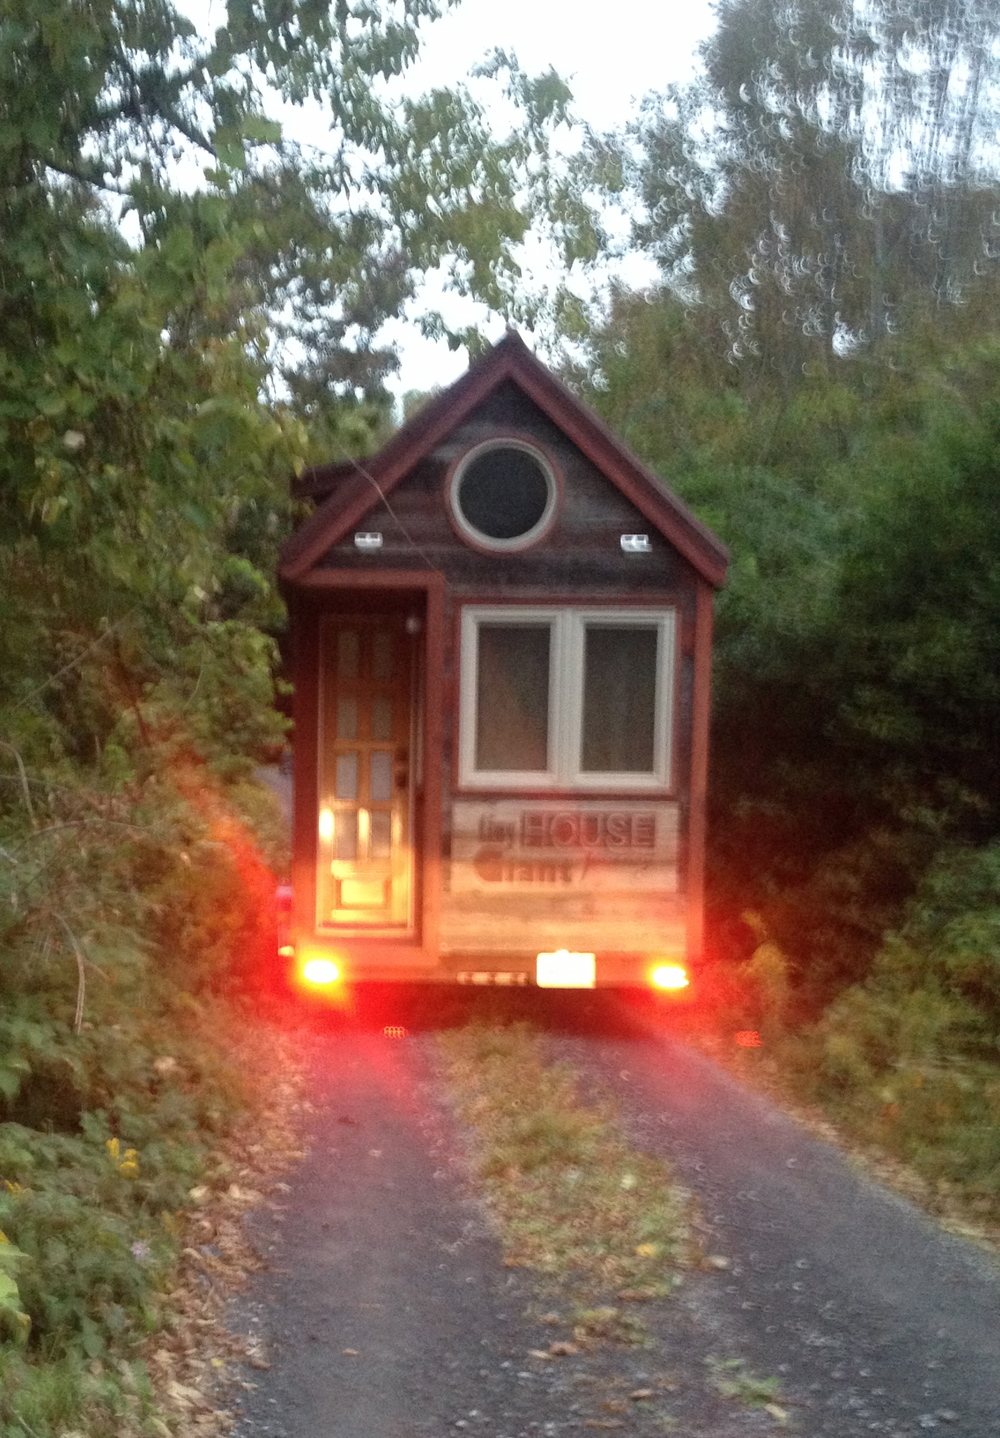 pulling in to Full Moon Tiny Shelters.